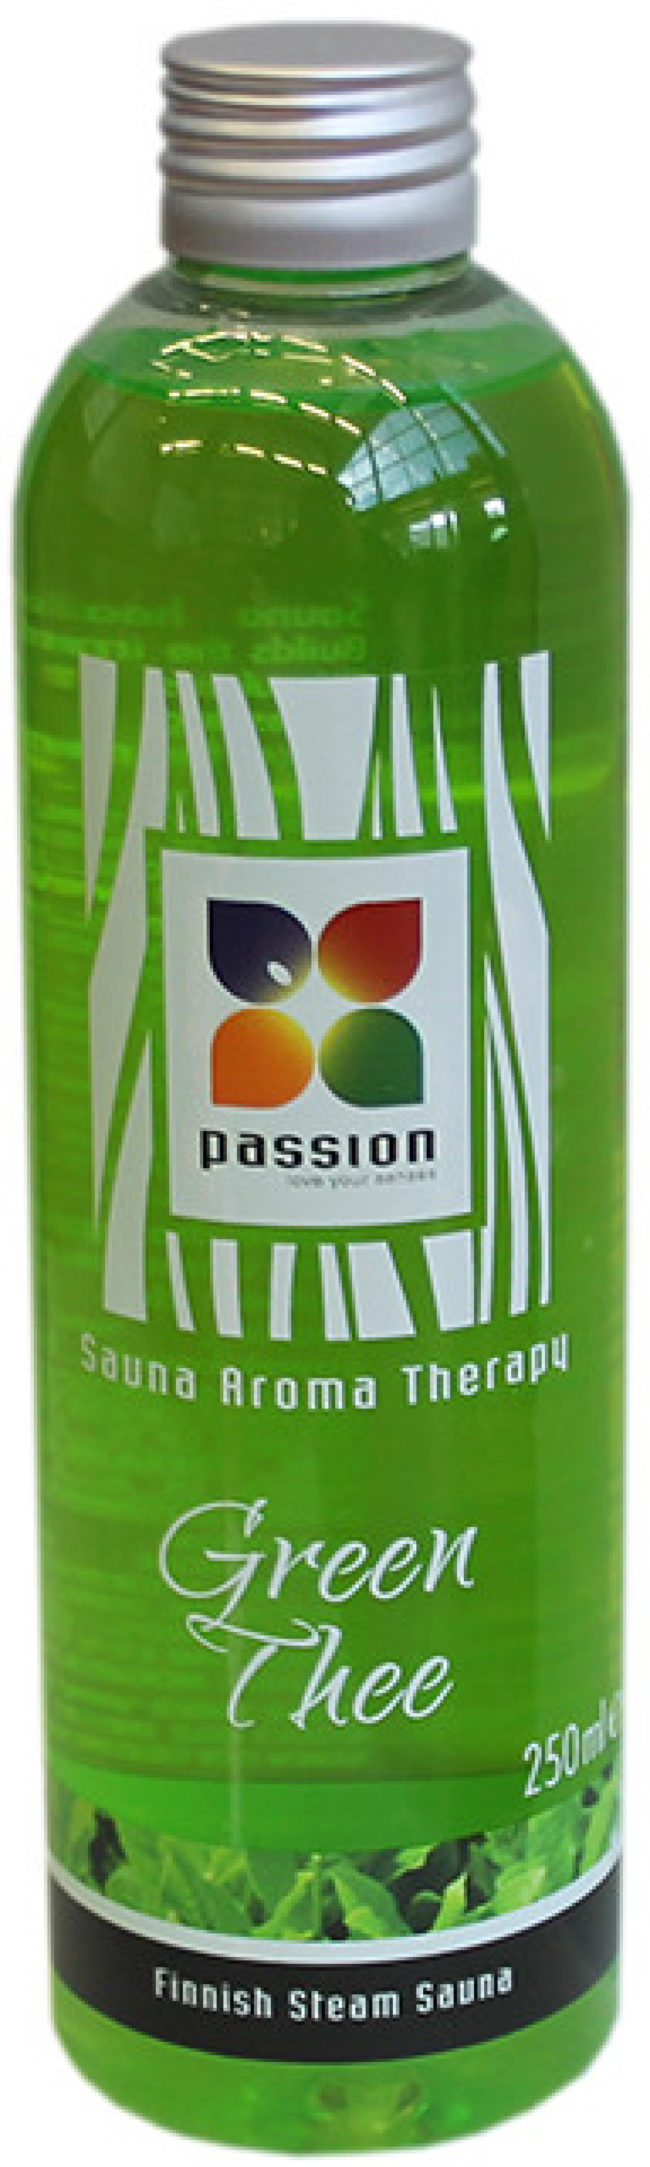 Afbeelding van Groene Escentail Passion Sauna - Aromatherapy - groen Thee